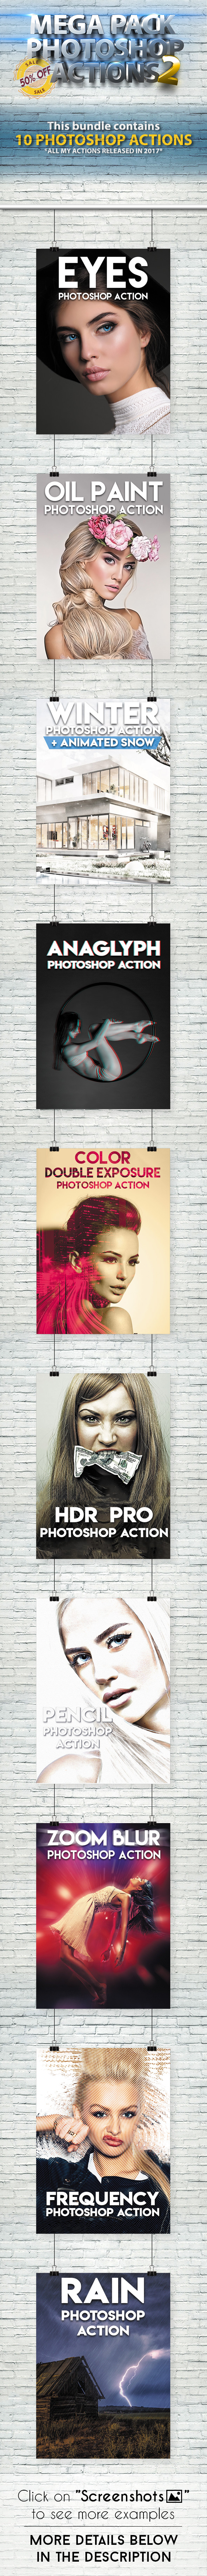 GraphicRiver Mega Pack 2 Photoshop Actions Bundle 21061930